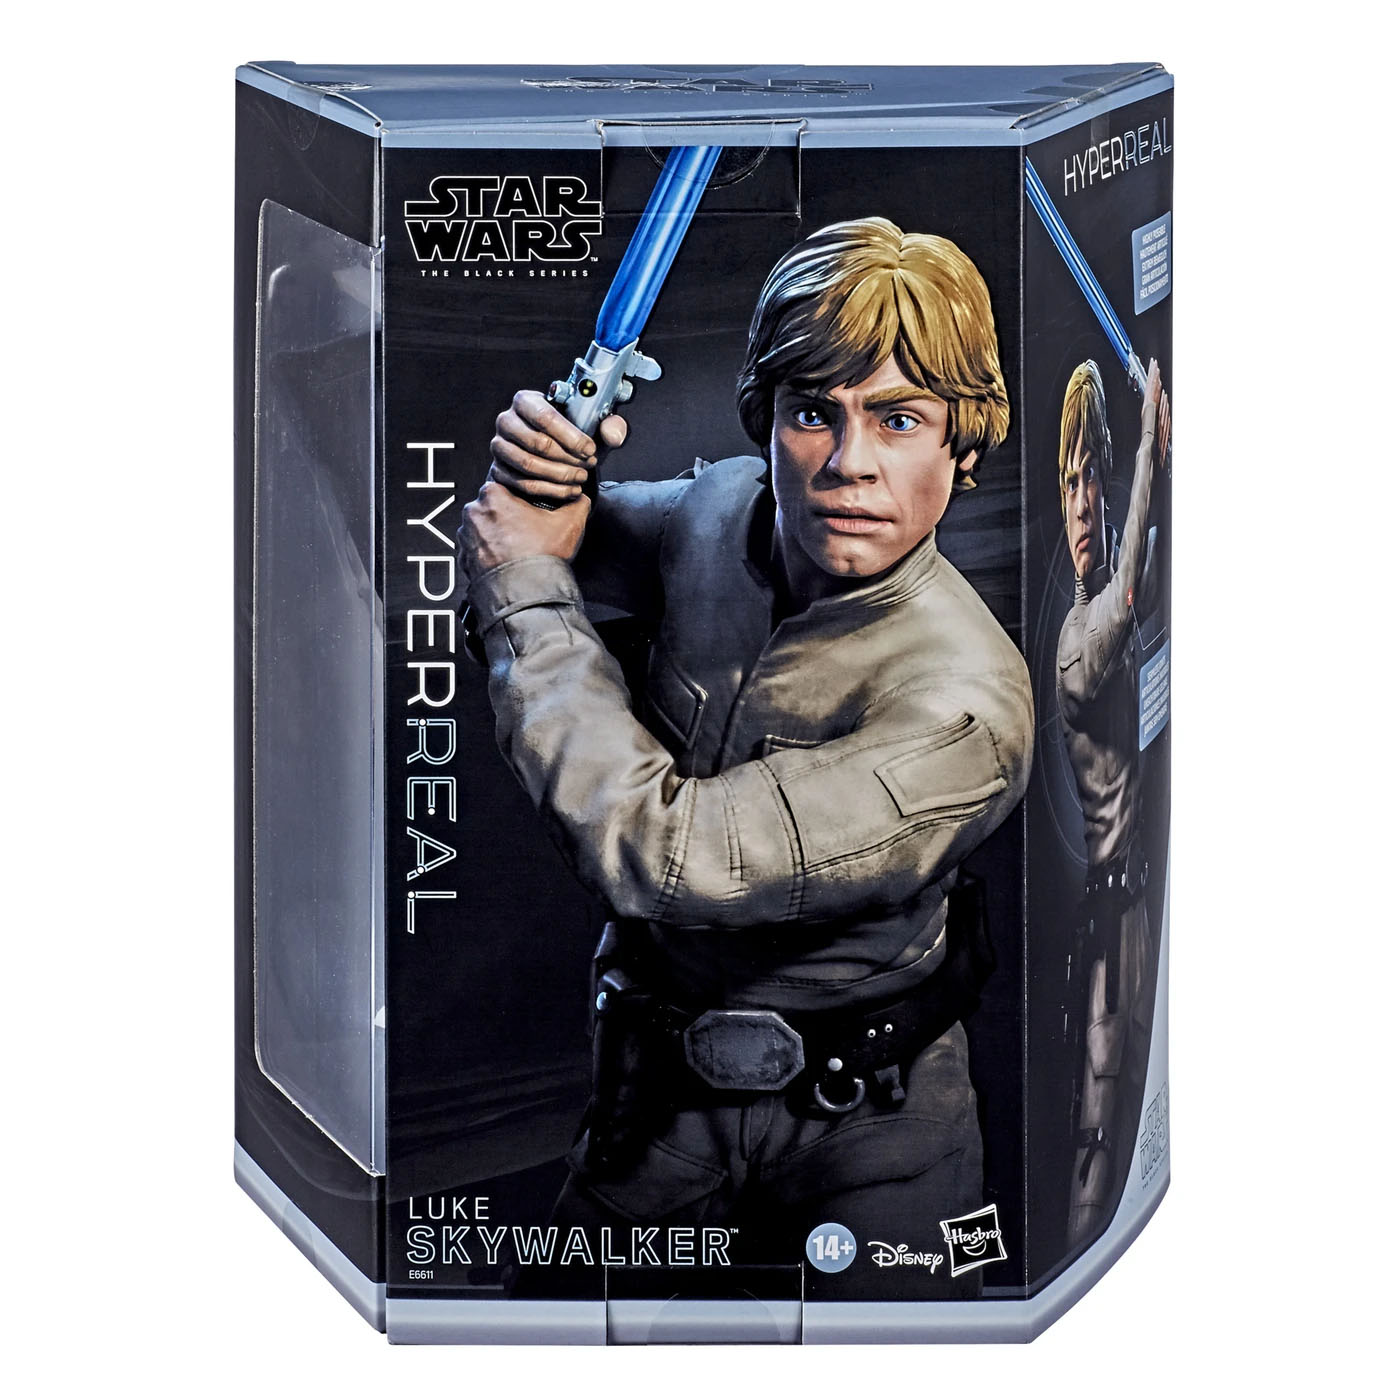 HyperReal Luke Skywalker 003